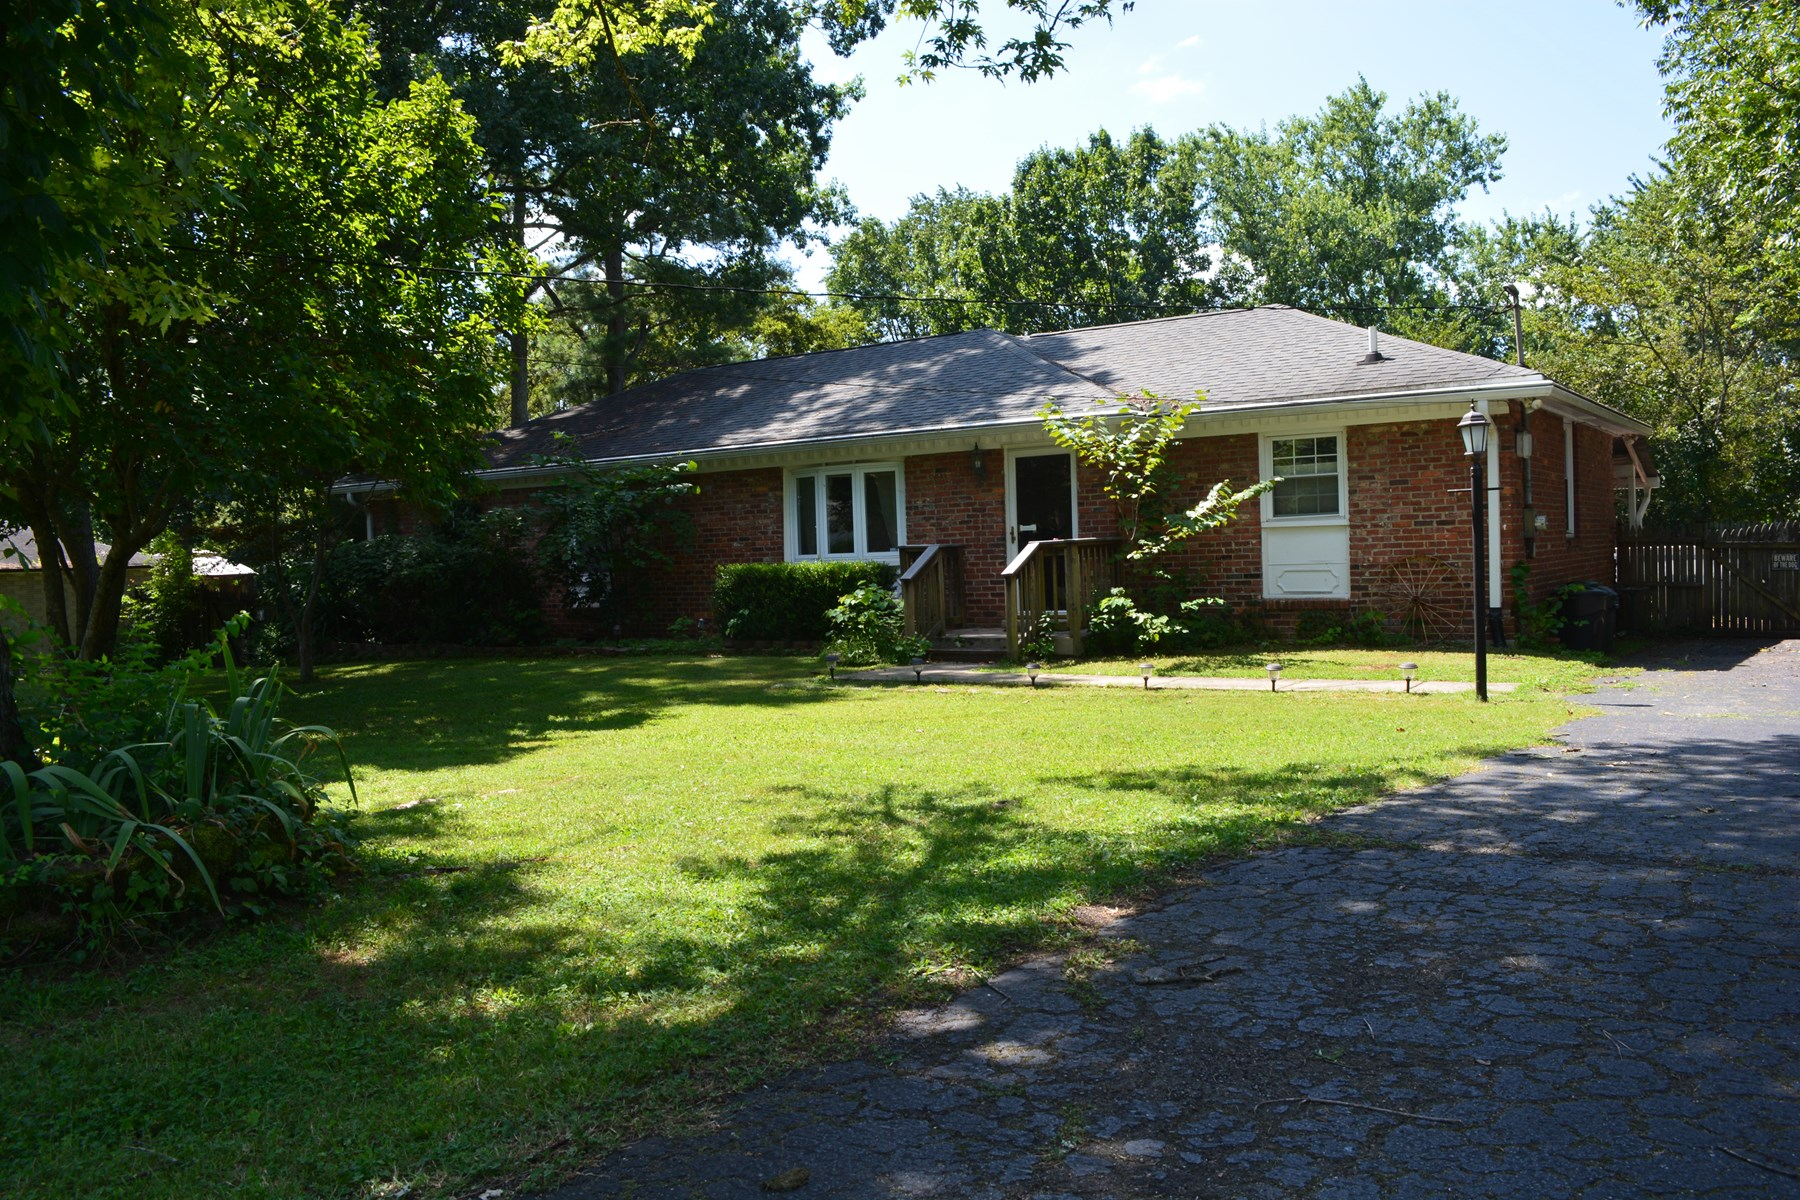 Home in Town within walking distance to Old Hickory Lake.